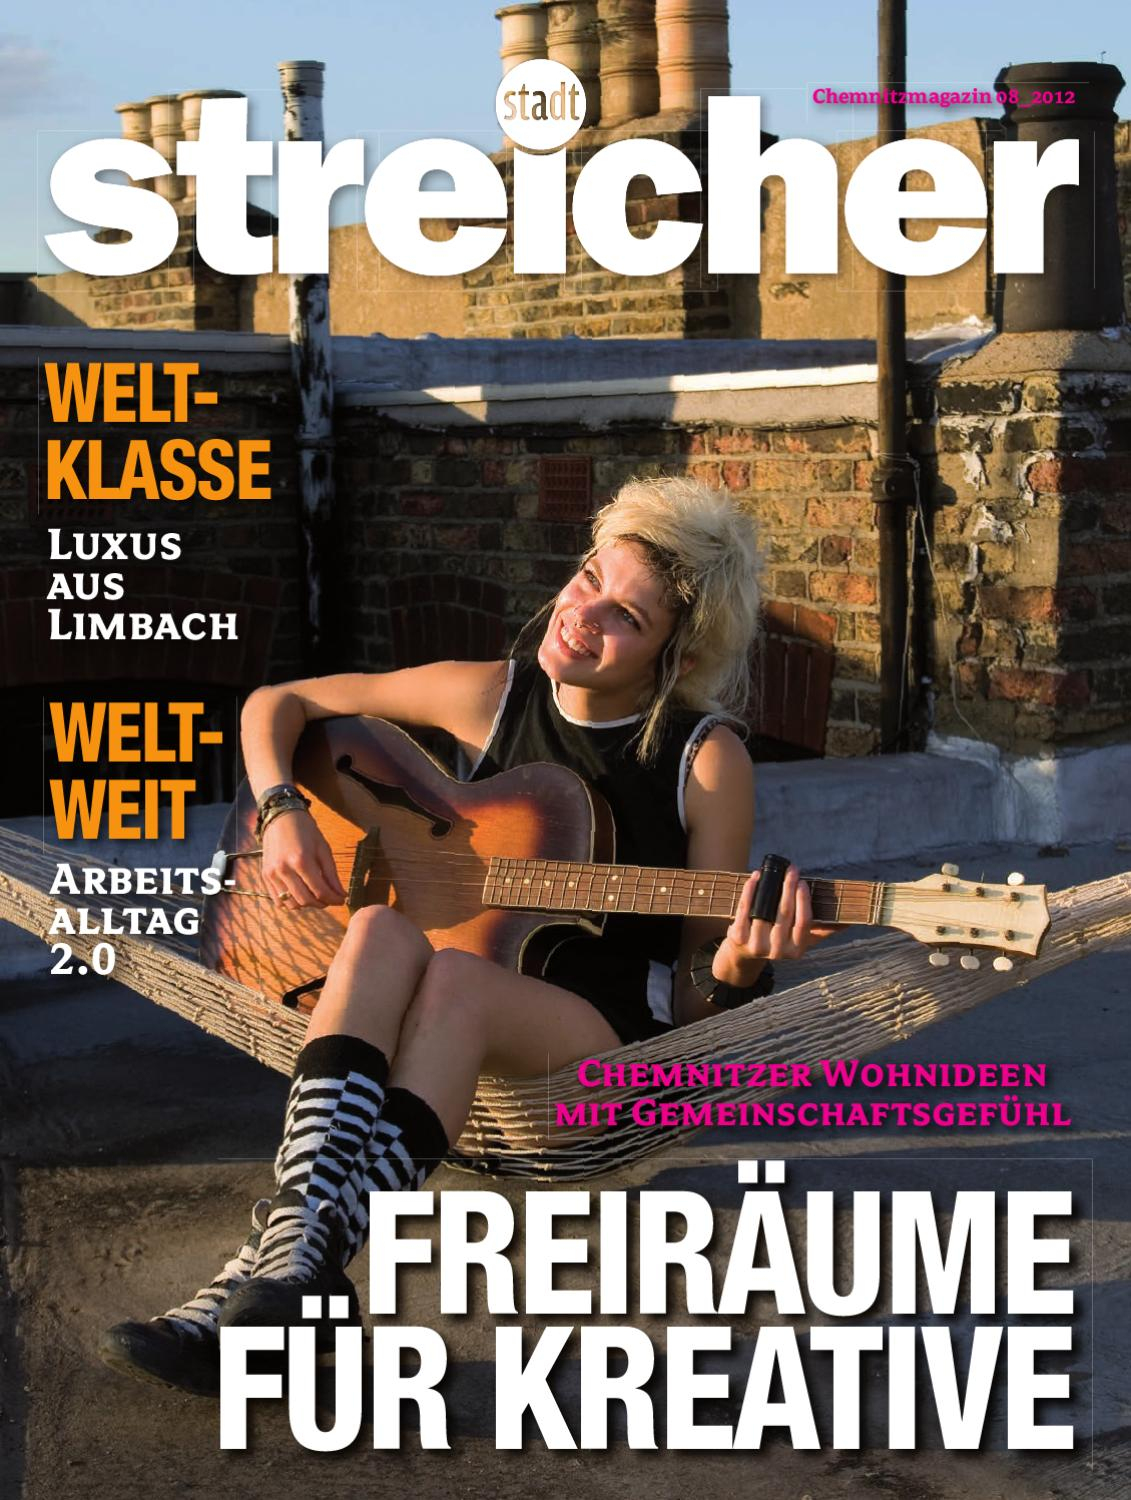 Stadtstreicher 08/12 By Stadtstreicher Stadtmagazin - Issuu destiné Musique Cirque Mp3